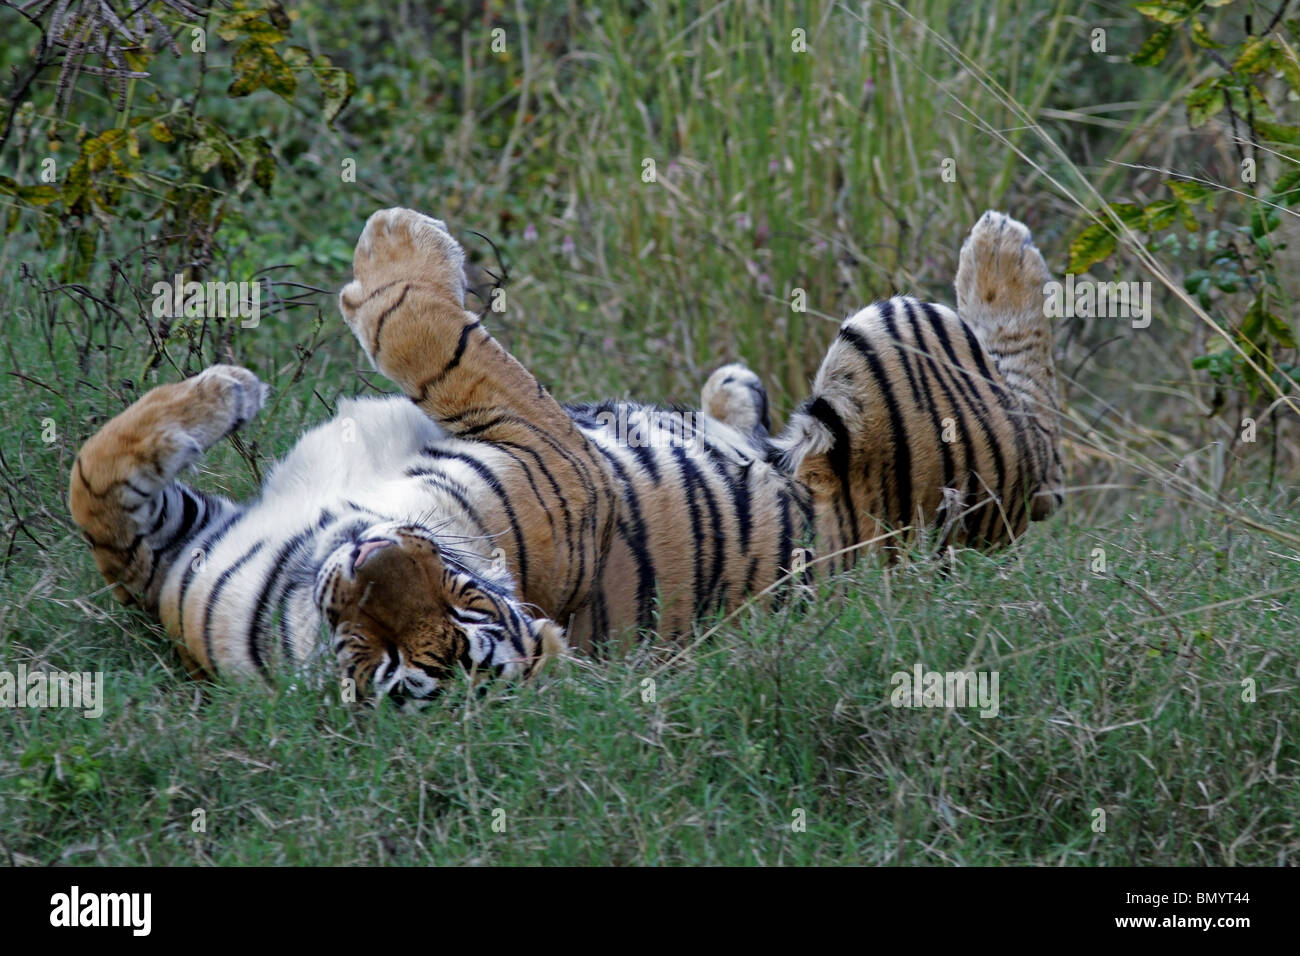 Tiger rolling in green grass in Ranthambhore National Park, India Stock Photo